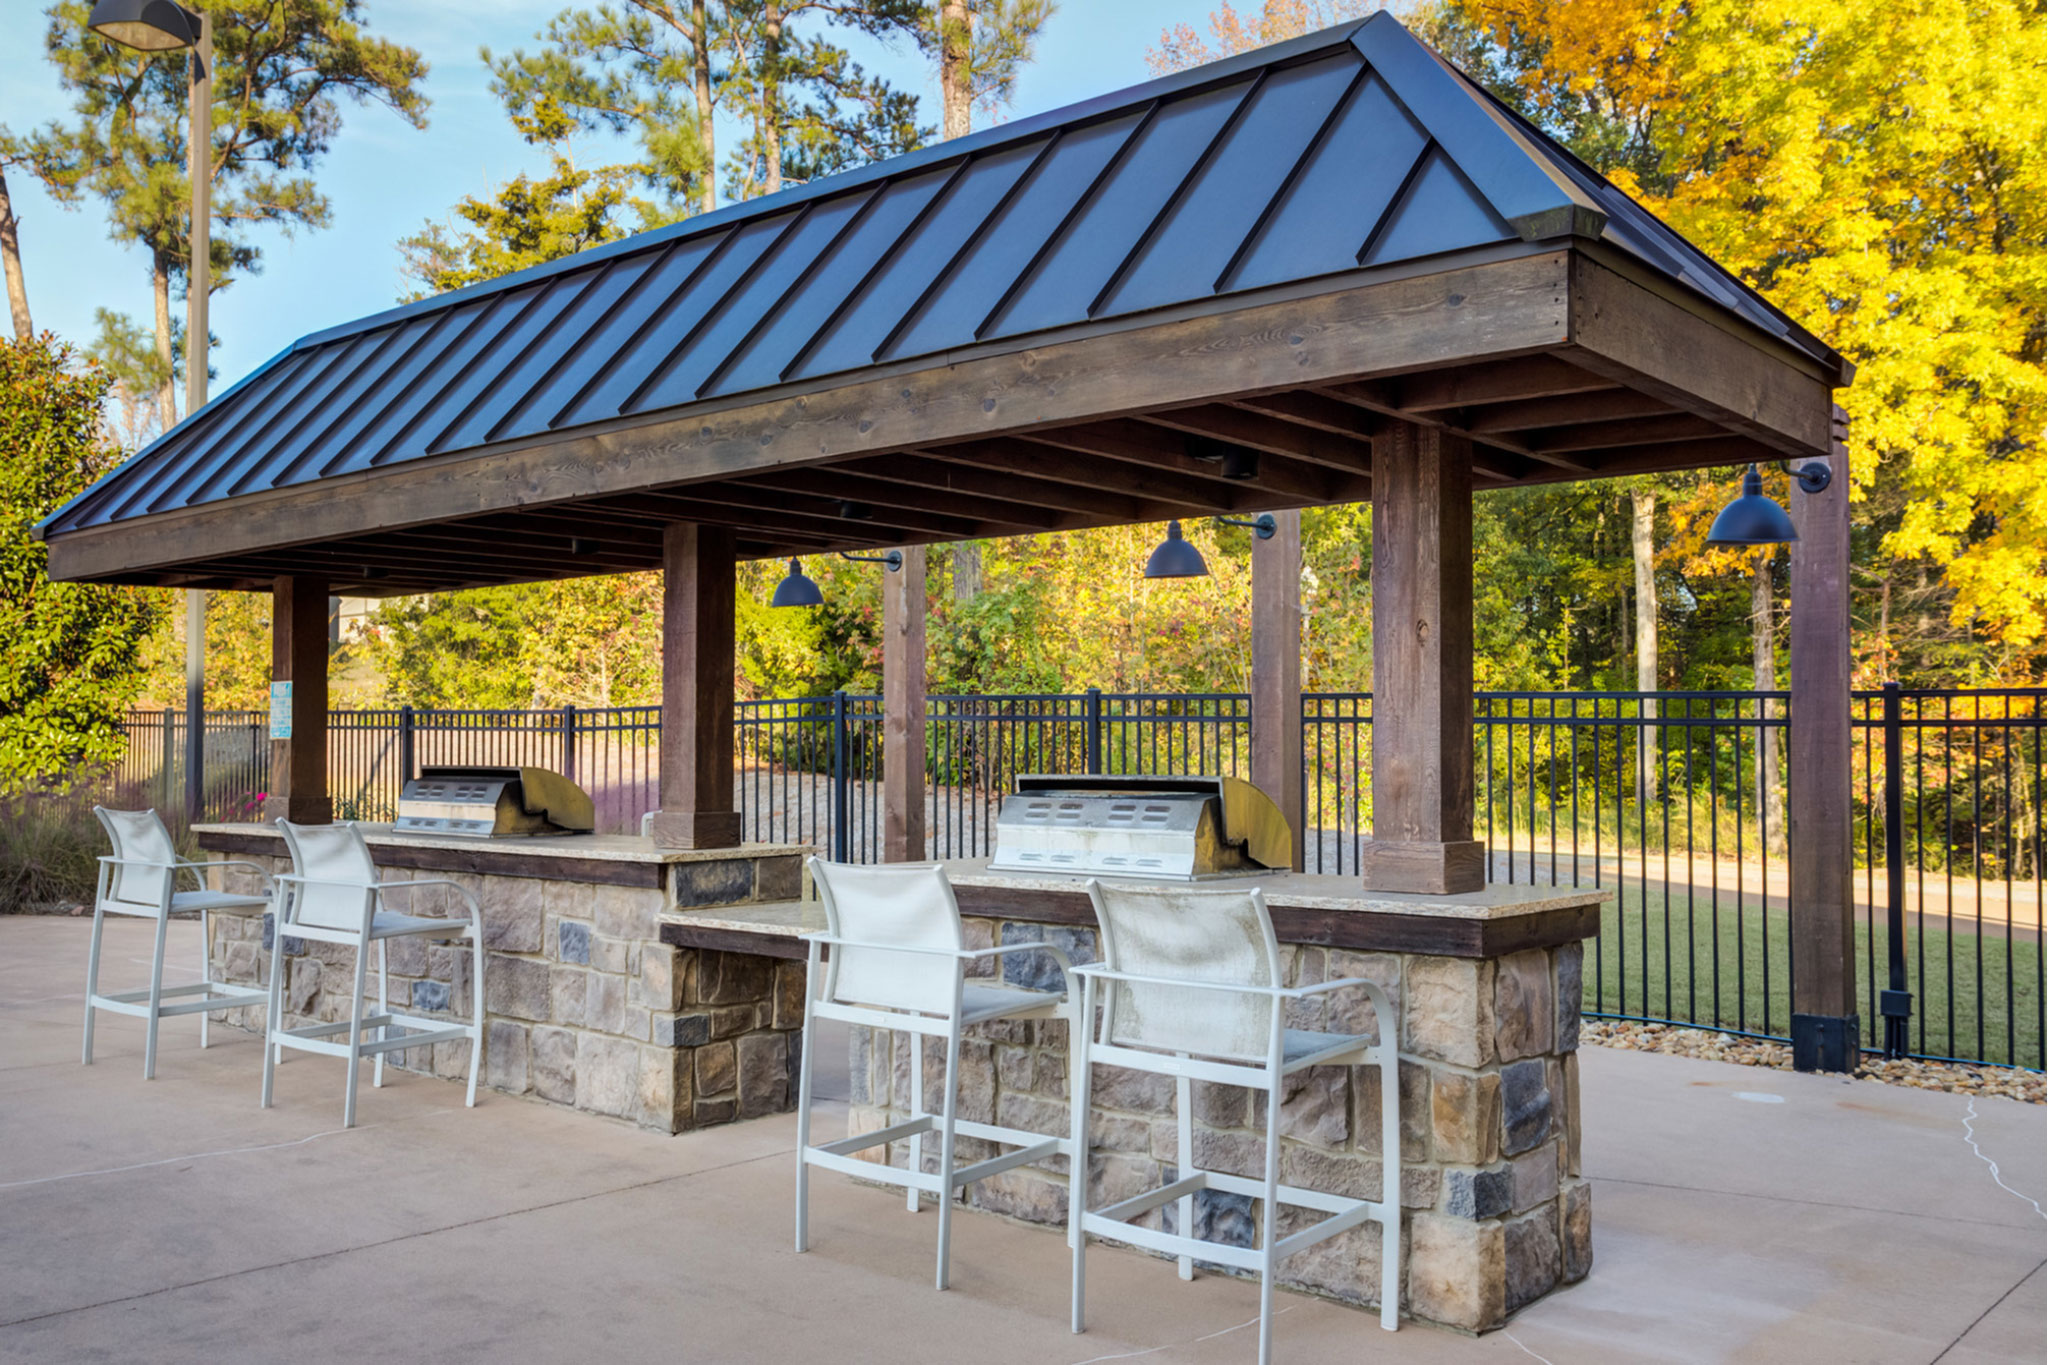 College Town Oxford Outdoor Grilling Area